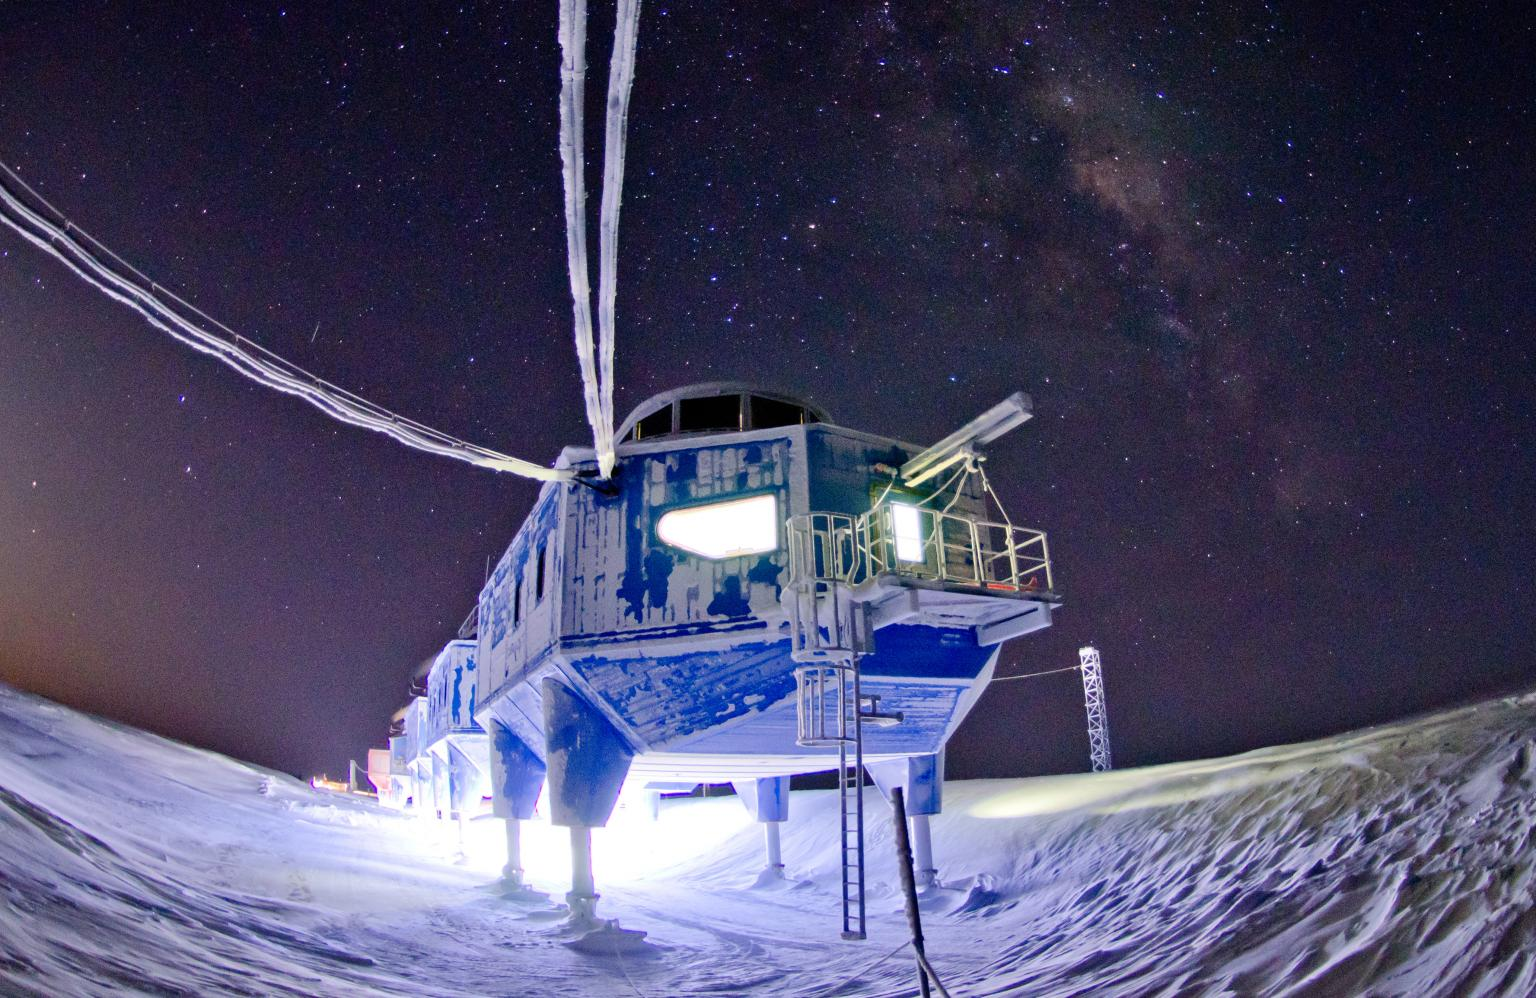 Structures destined for the Antarctic must be designed to withstand prevailing winds of up to 90 miles per hour and an average external temperature of –30ºC with an extreme minimum of -56ºC (Photo Credit: British Antarctic Survey)